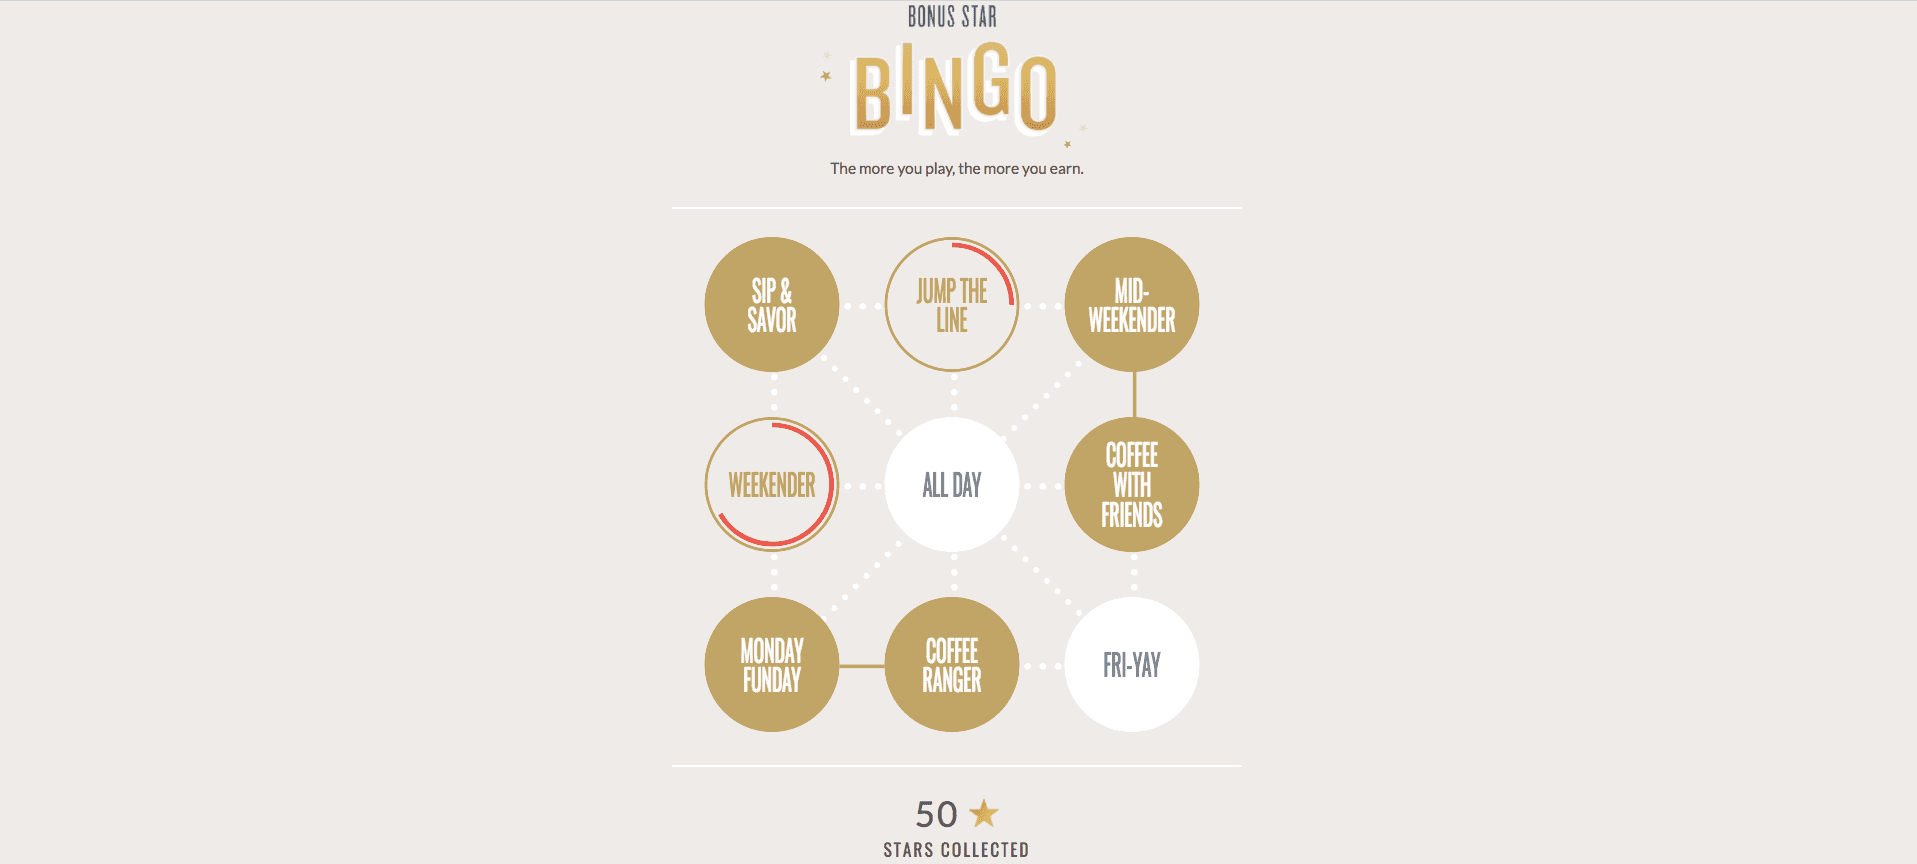 Starbucks Bonus Star Bingo Tips